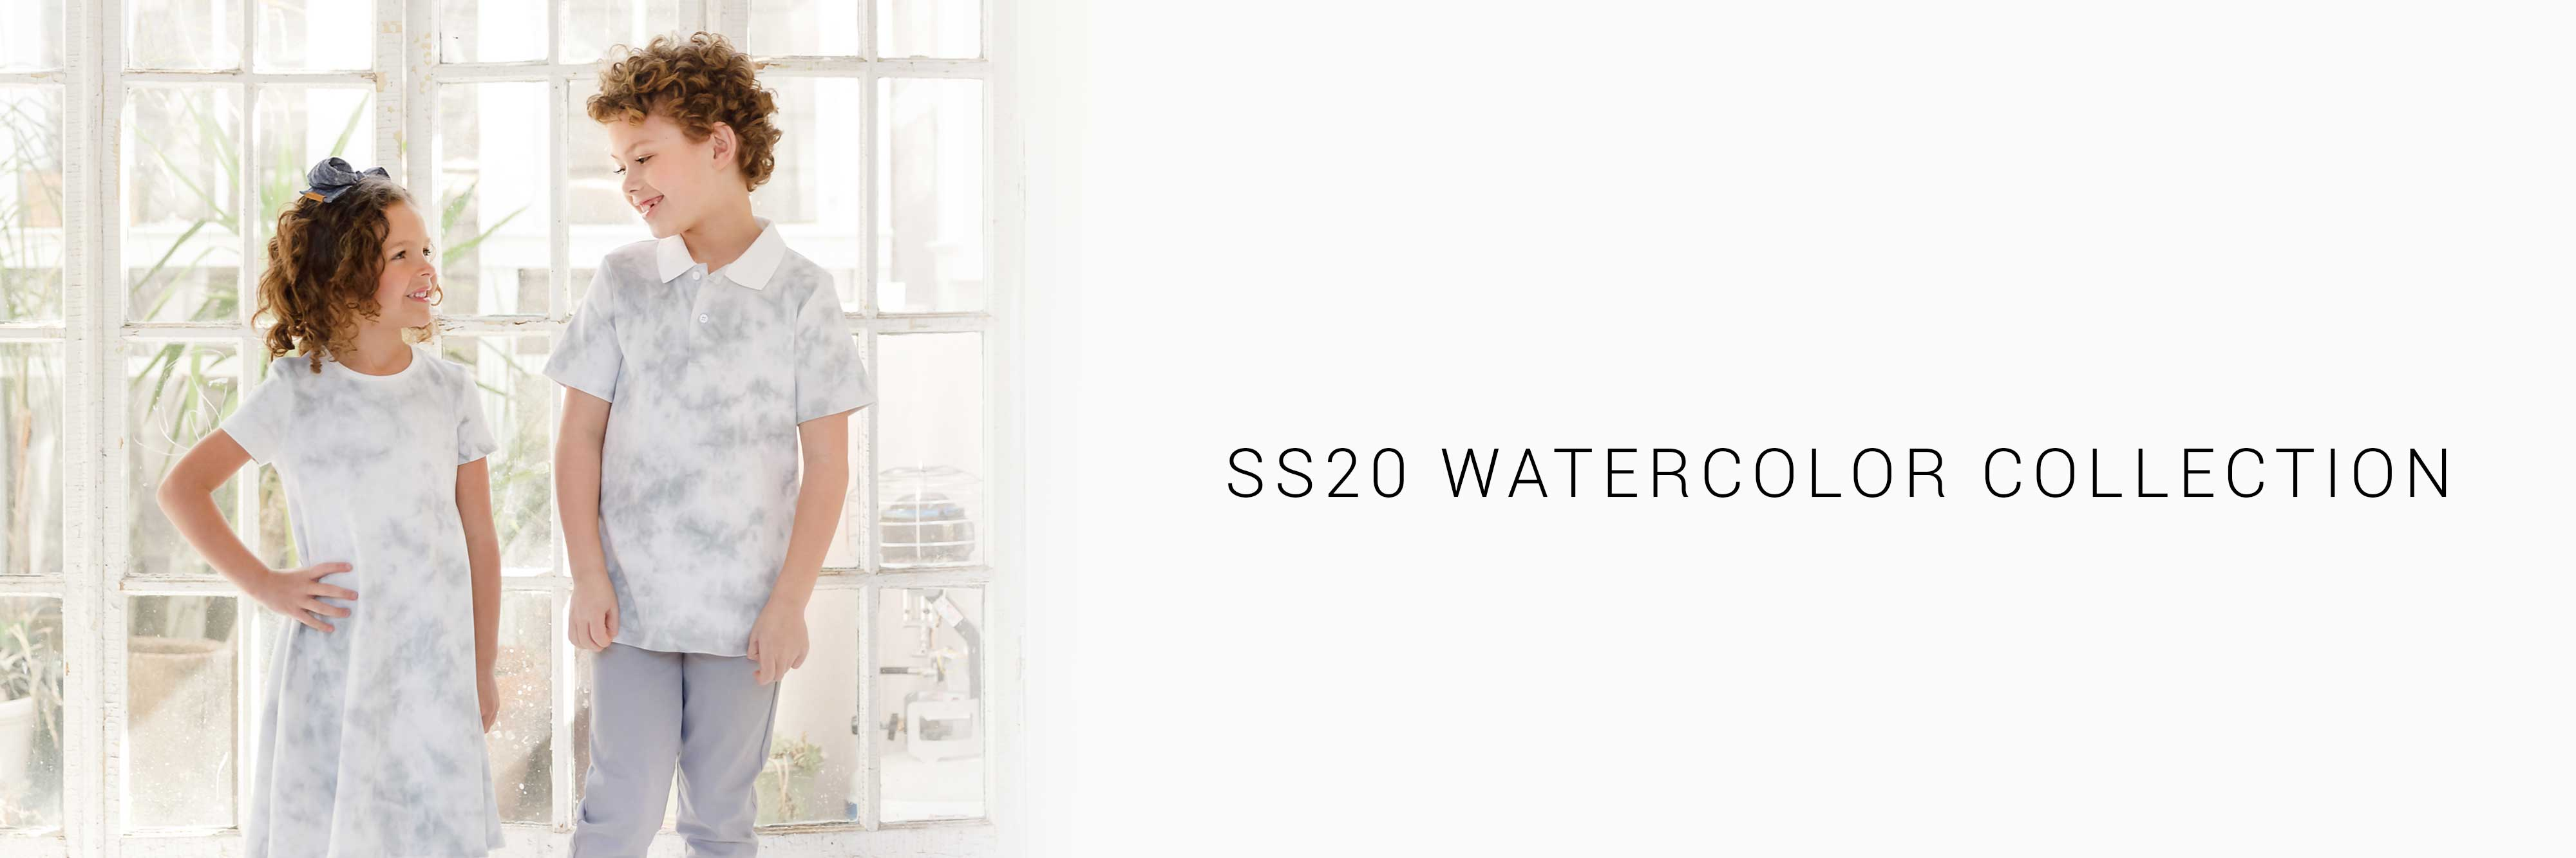 SS20 Watercolor Collection